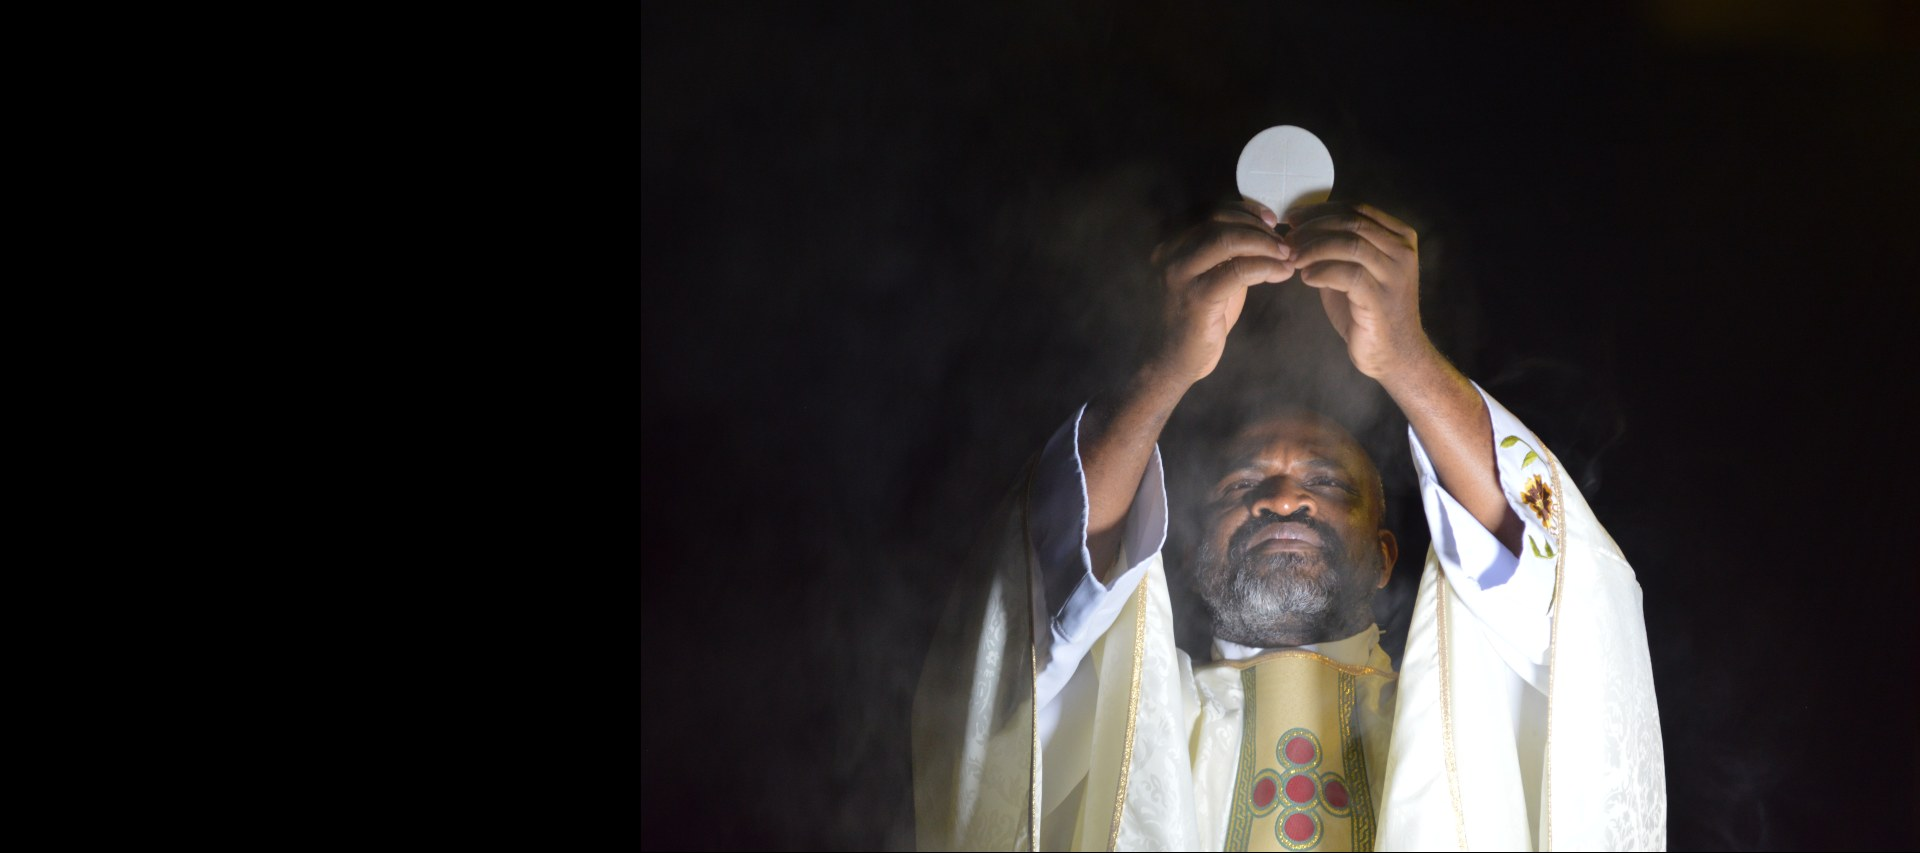 Priest holding up the Holy Eucharist during consecration